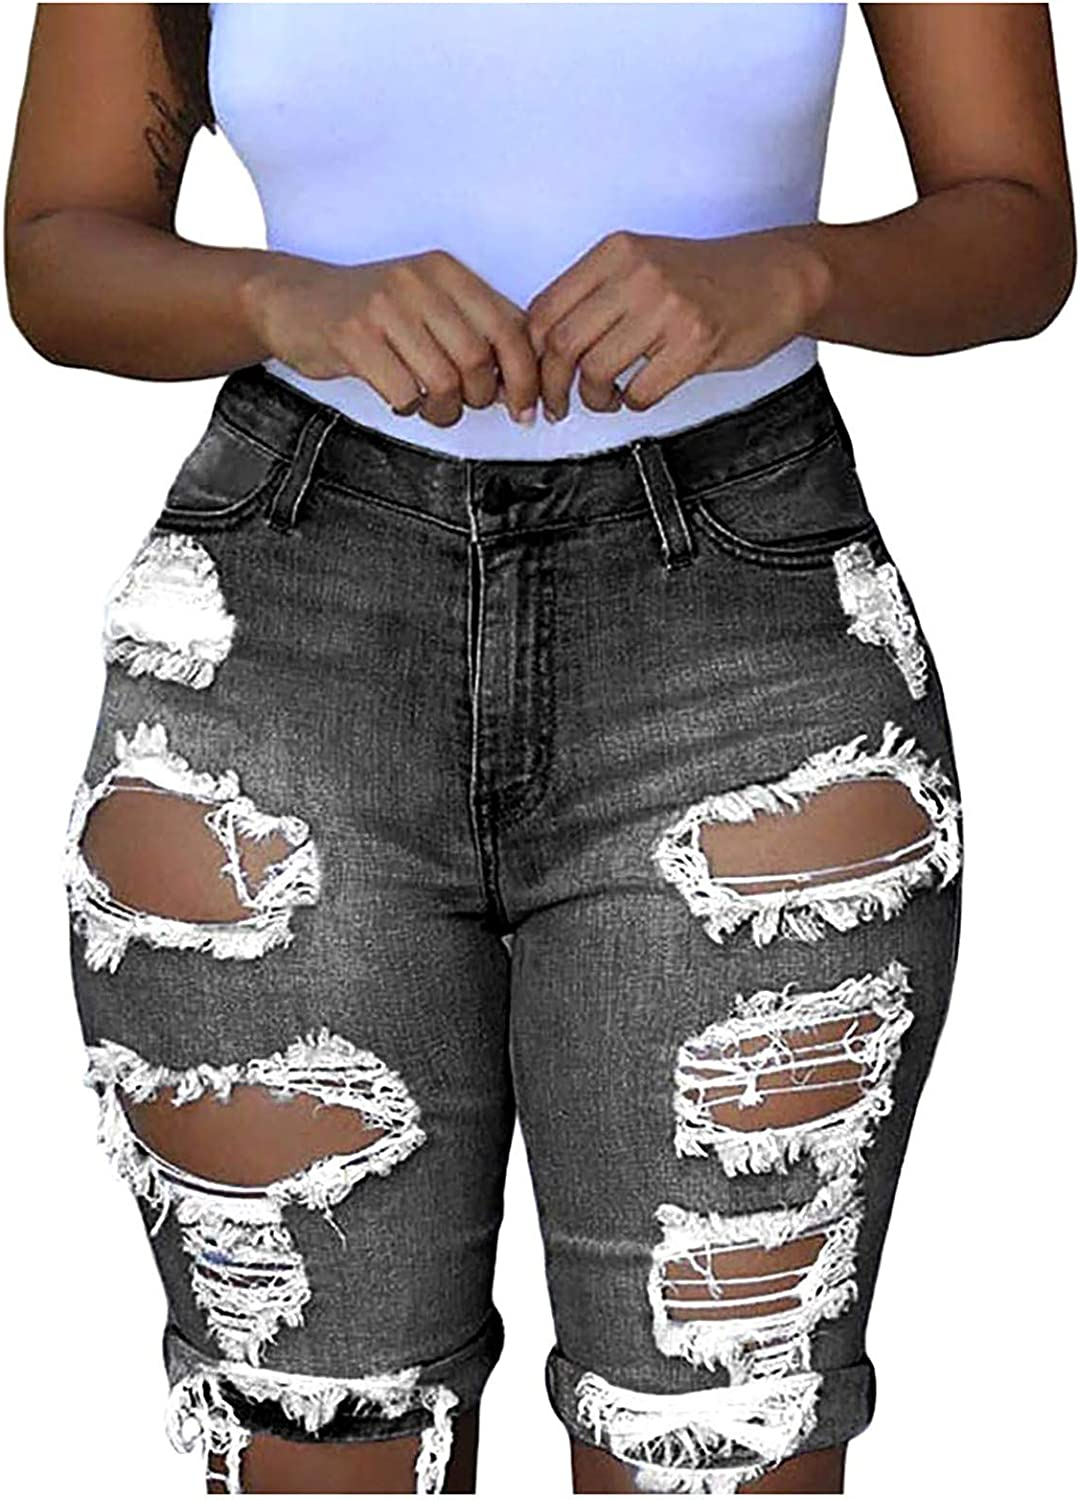 MASZONE Y2K Fashion Jeans for Women, Womens High Waist Ripped Hole Washed Distressed Short Jeans Sexy Denim Jean Shorts